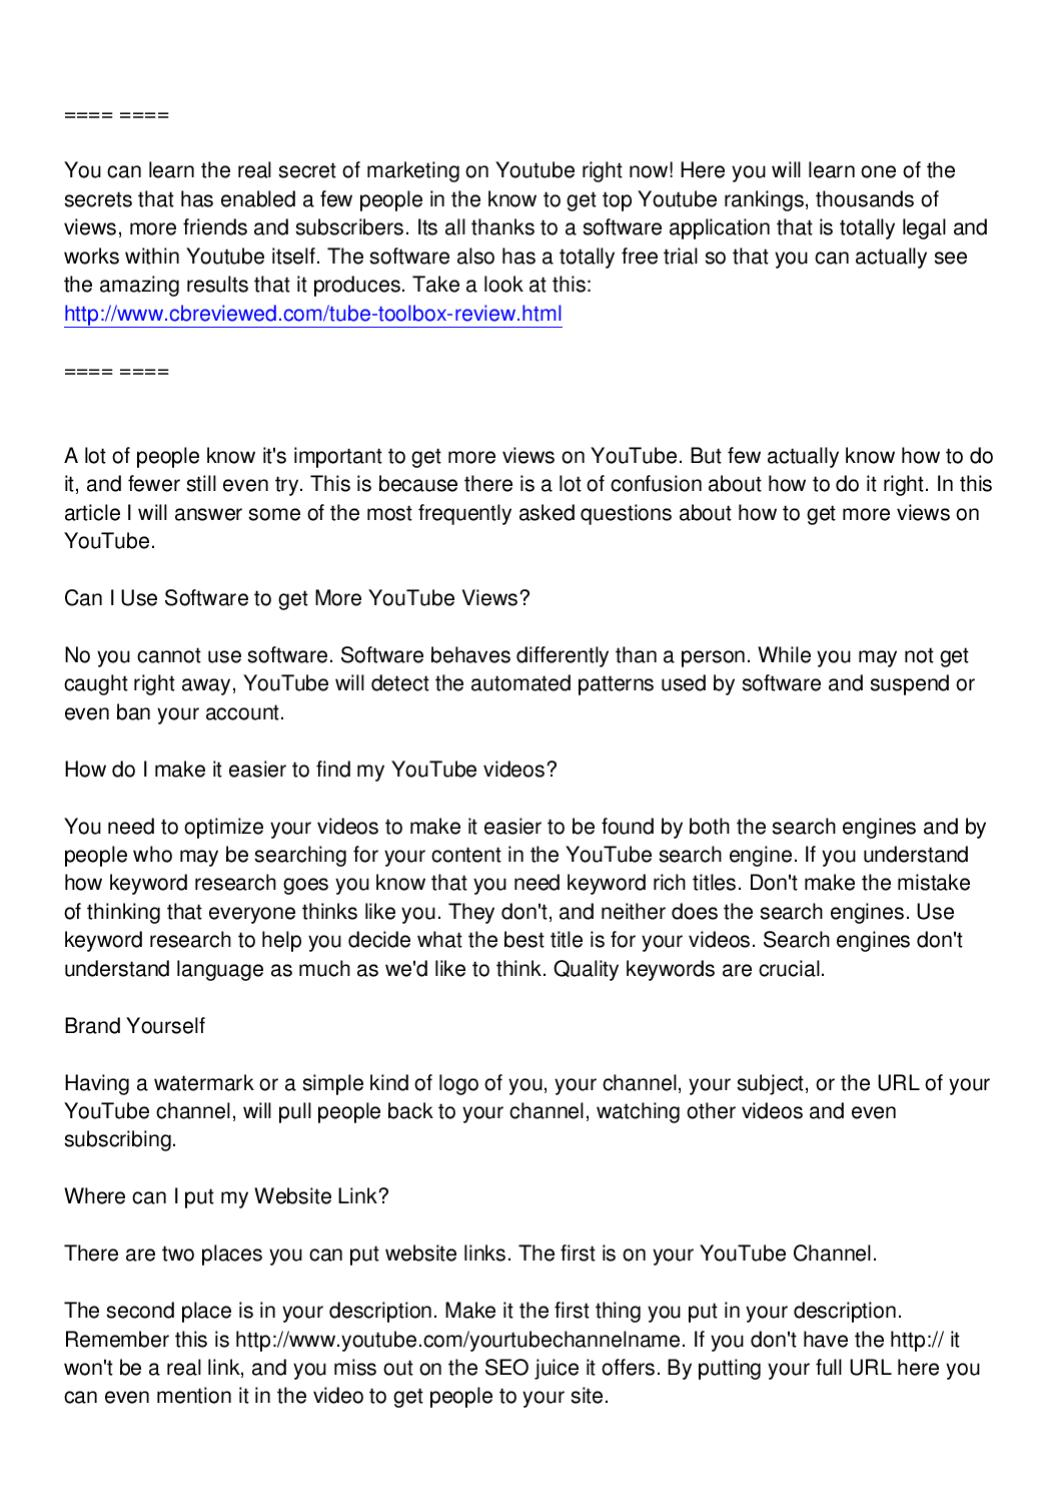 Get More Youtube Views - Youtube Marketing Trick by Andrew